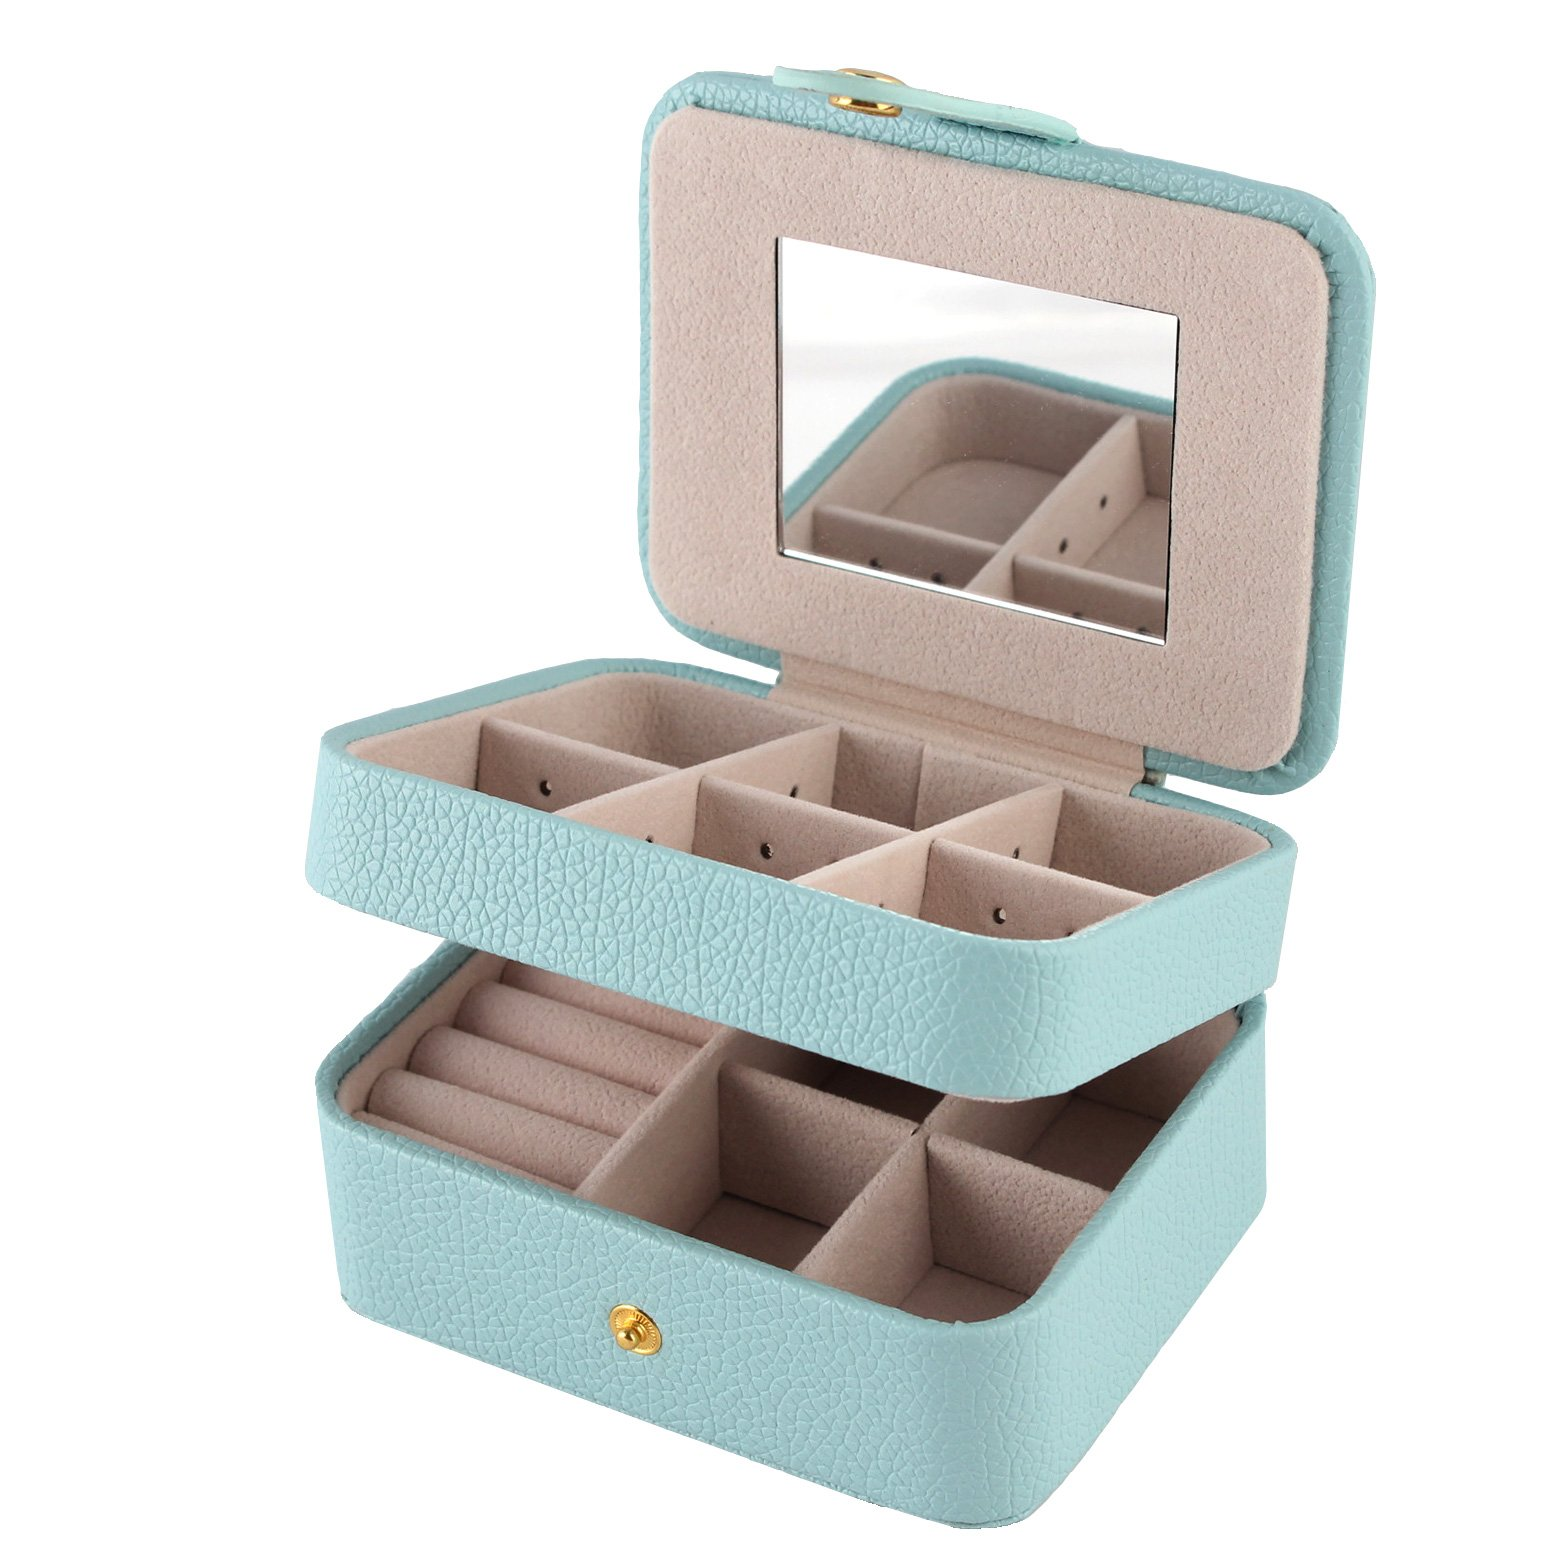 Equuleus Small Jewelry Box Organizer | (PALE GREEN) | Portable Jewelry, Earring Holder and Ring Storage Case for Travel with Premium Velvet Lining